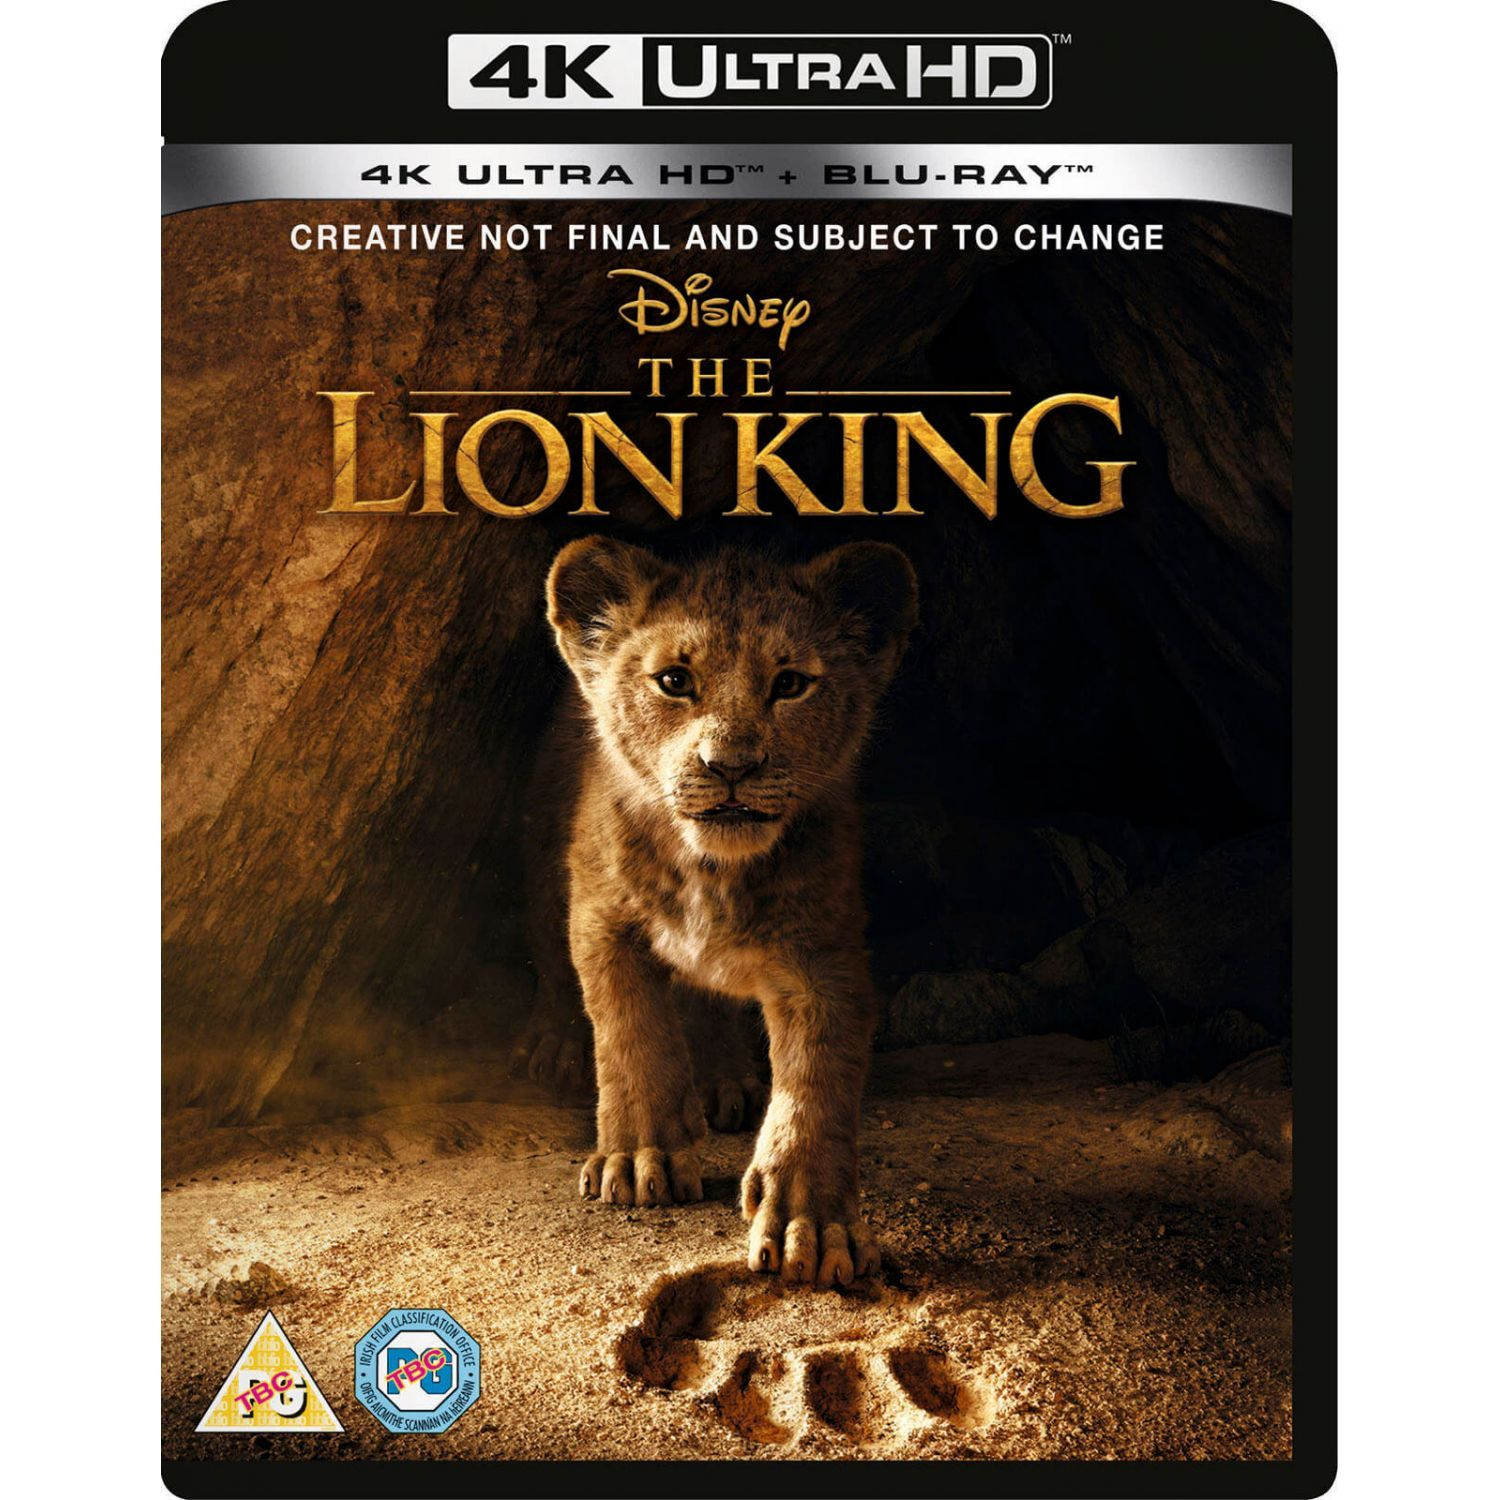 The Lion King 2019 Imported 4k Uhd Blu Ray Blu Ray